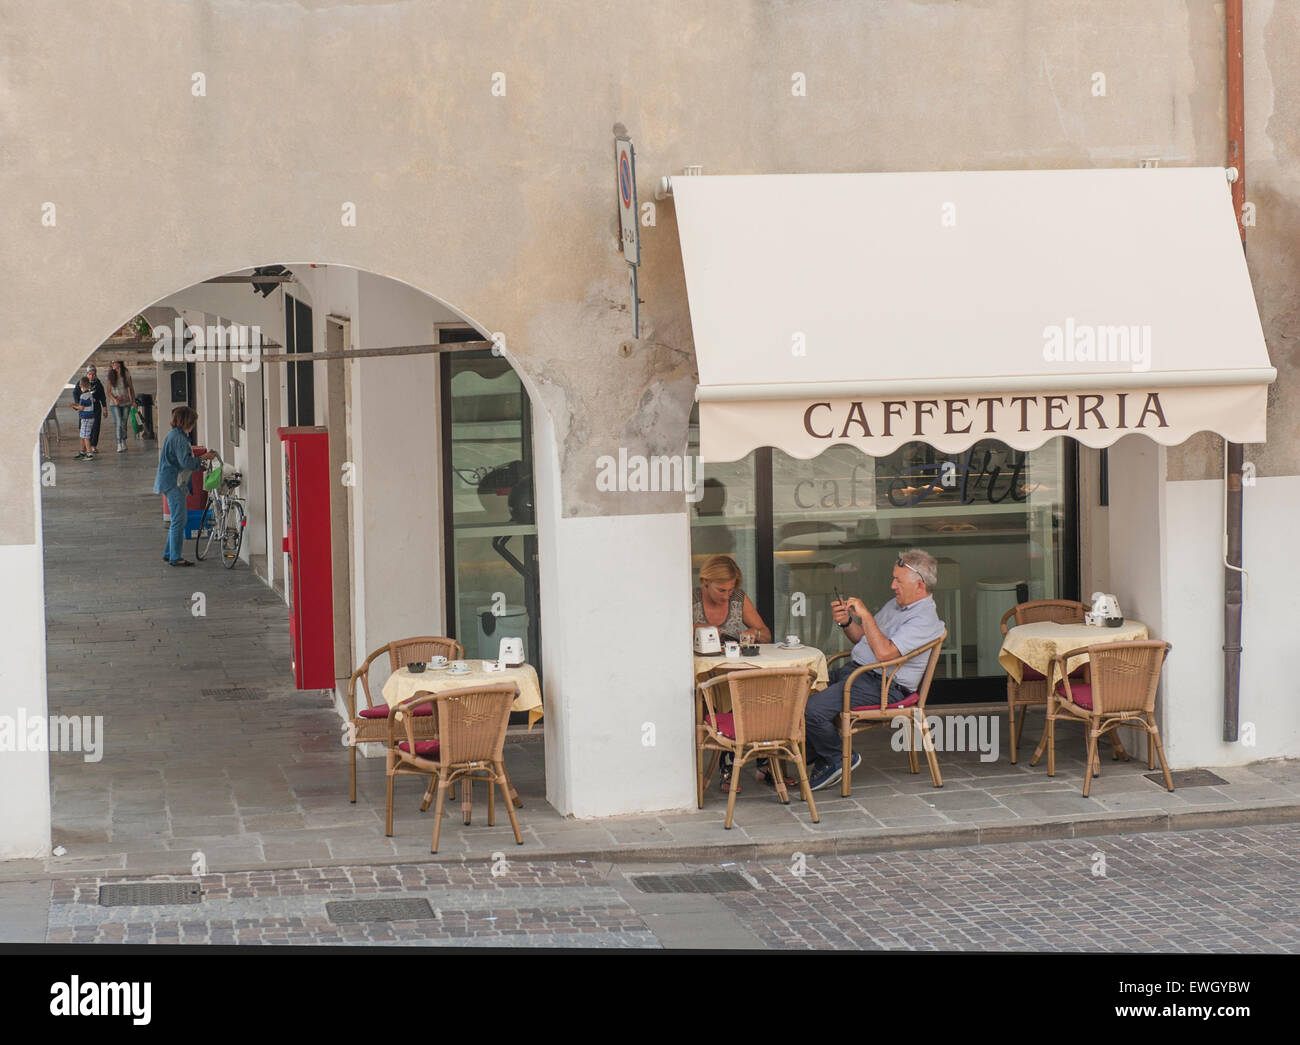 Coffee shop in the old town of Monselice, Veneto, Italy - Stock Image